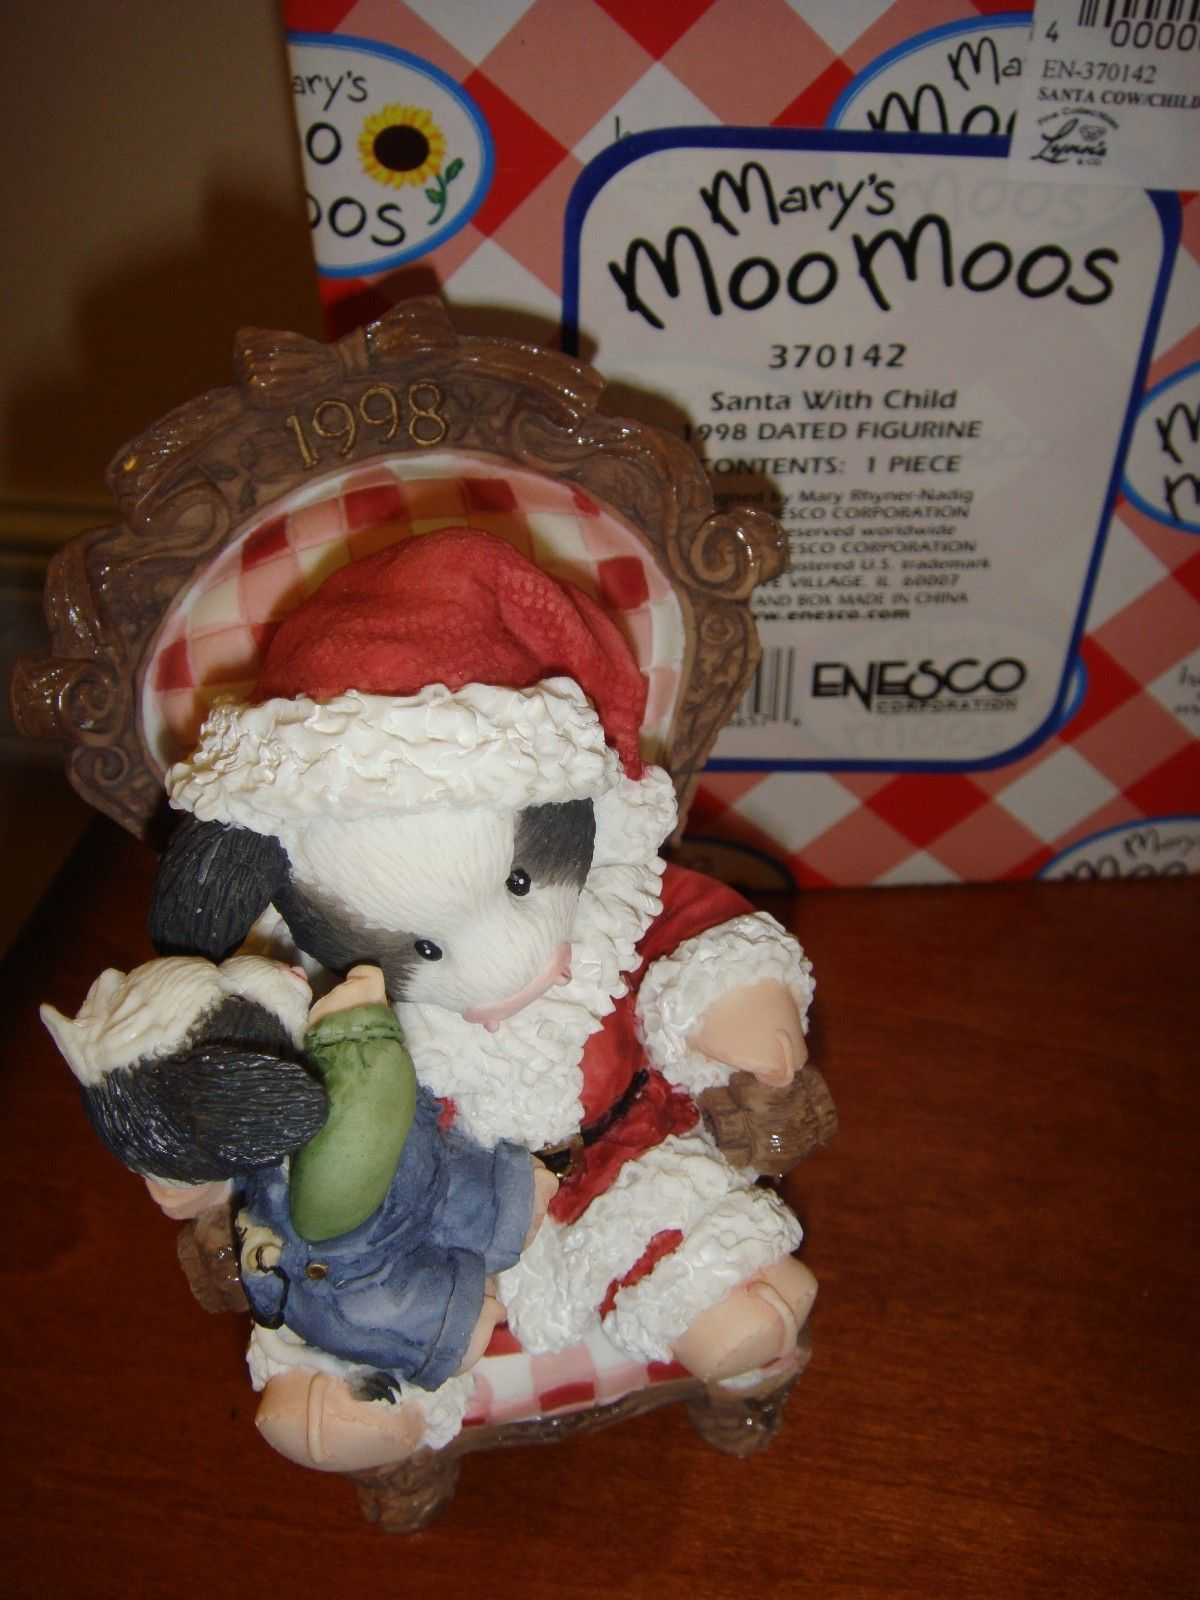 Mary's Moo Moos Santa With Child Dated 1998 Figurine, 370142